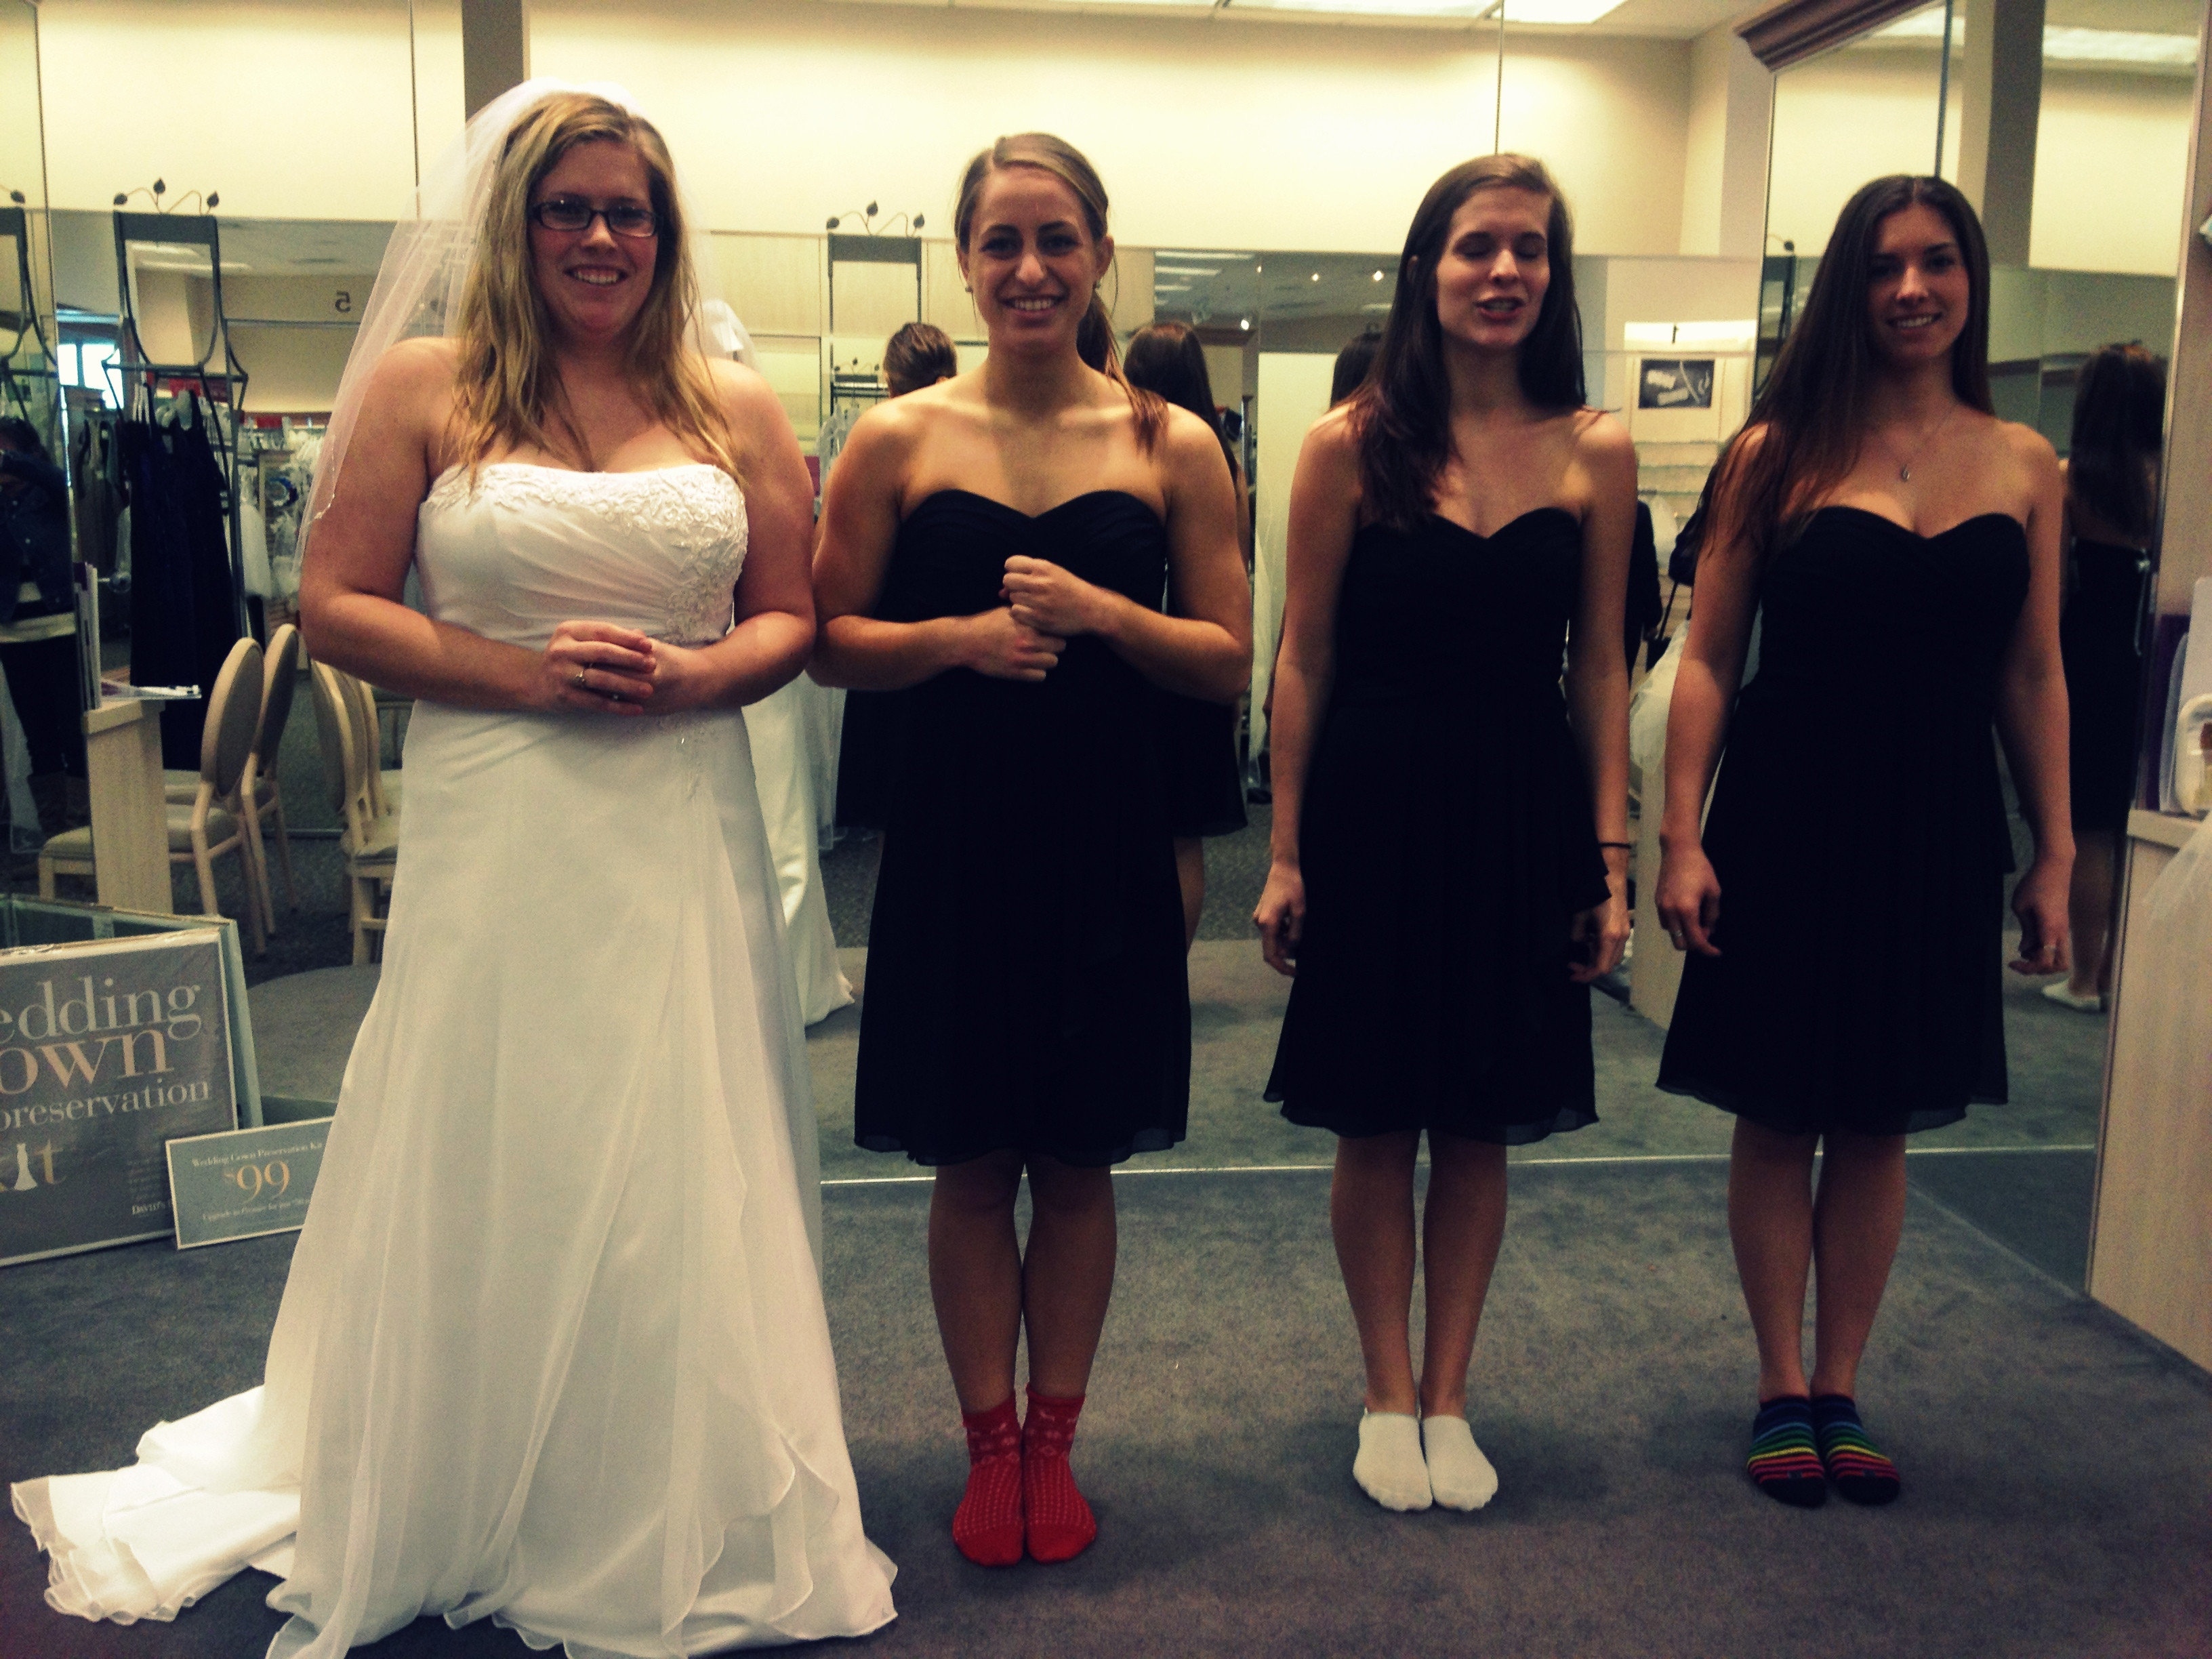 how to choose maid of honor without hurting feelings